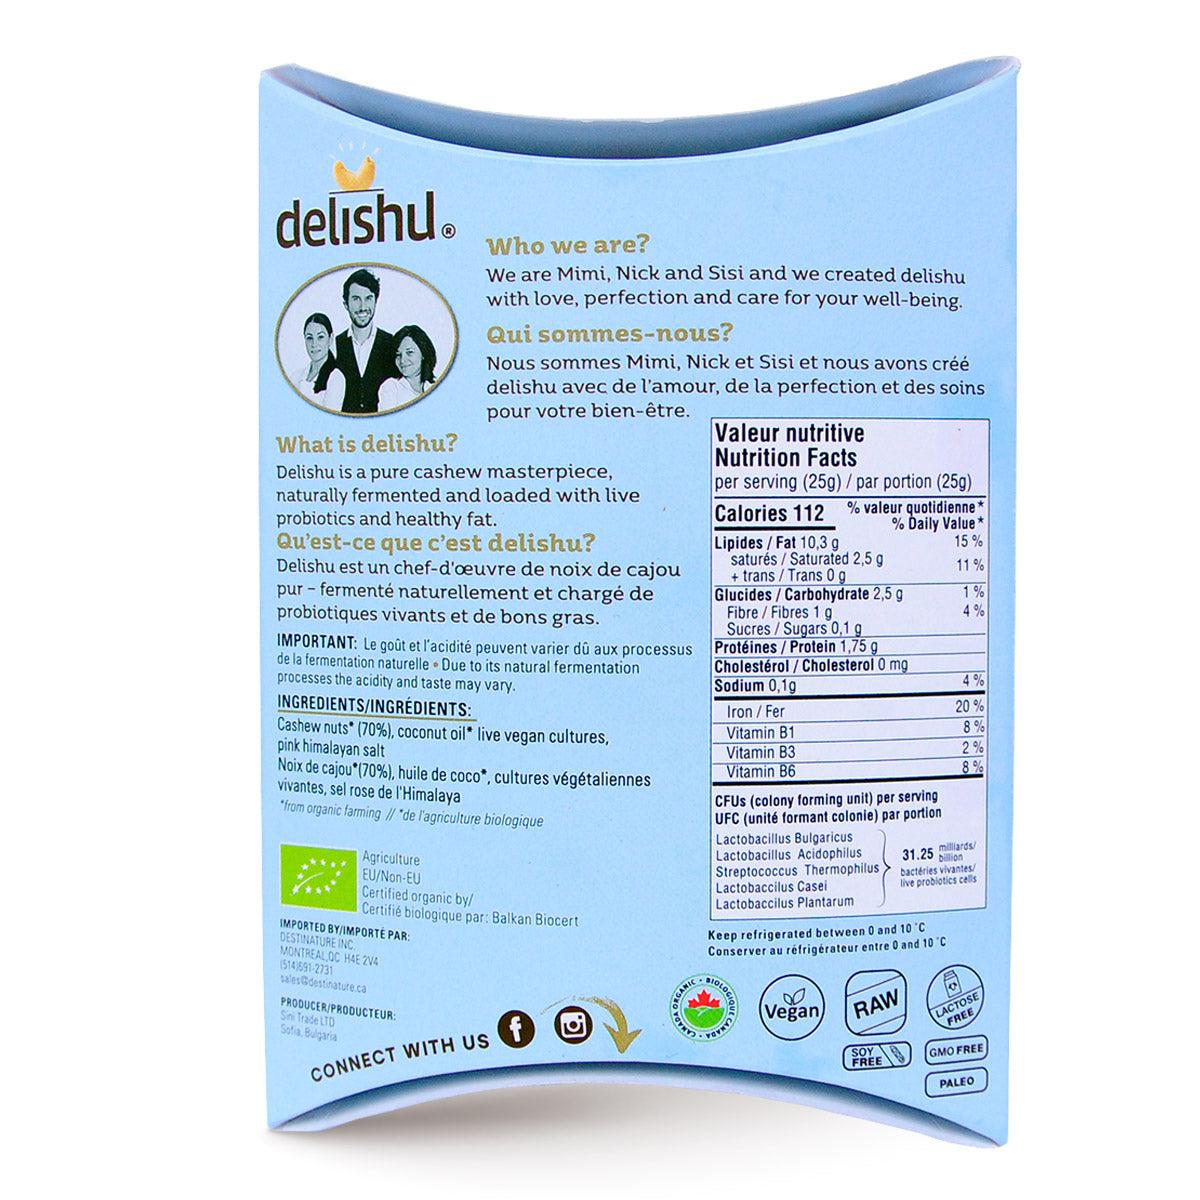 Delishu – Cultured Cashew Product, Natural, Organic